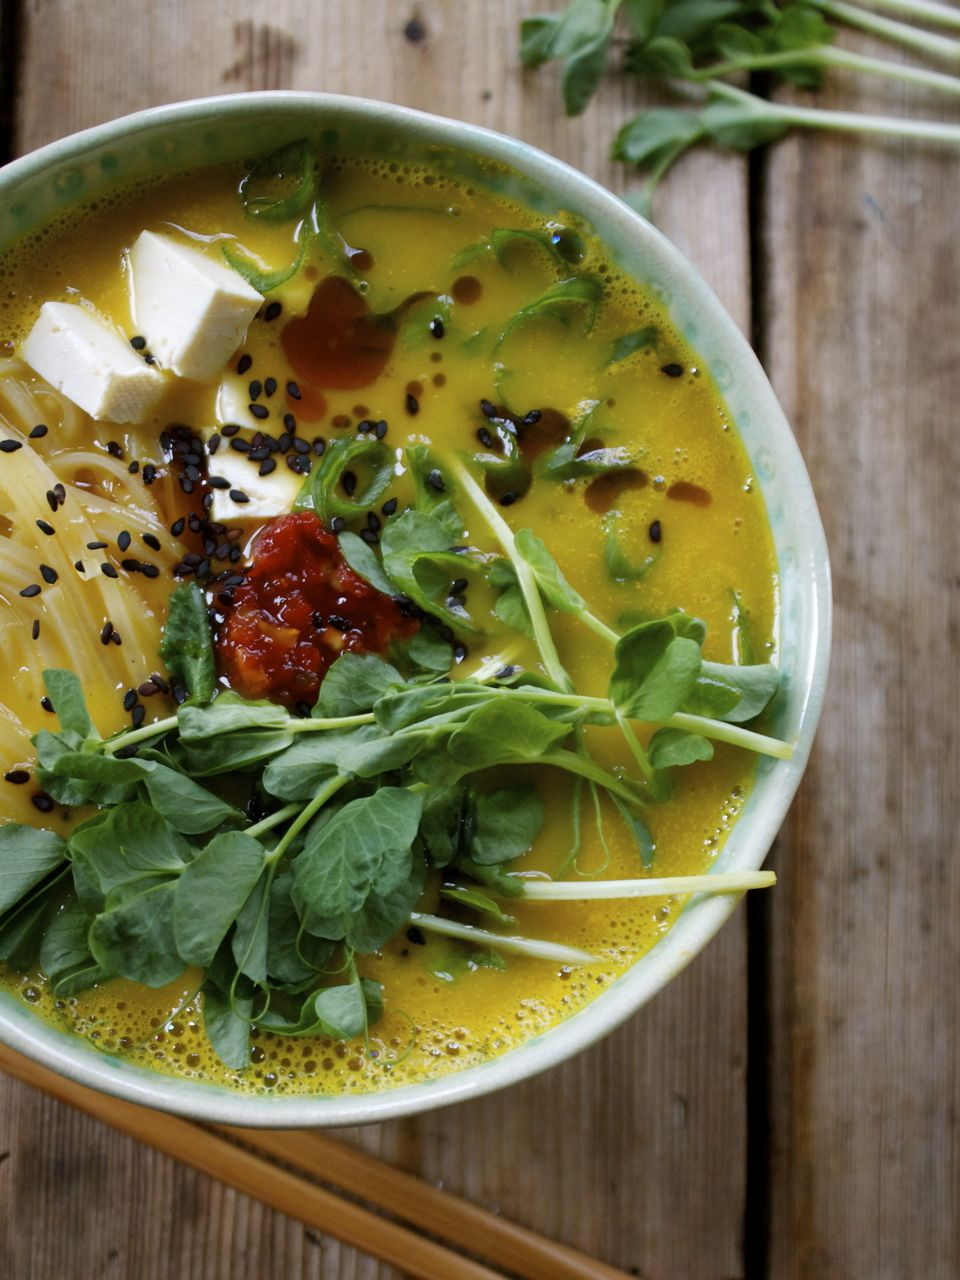 10 Minute Meal: Ramen Bowl w/ Squash Broth, Rice Noodles, Tofu & Fresh Pea Shoots10 Minute Meal: Ramen Bowl w/ Squash Broth, Rice Noodles, Tofu & Fresh Pea Shoots  The greatest wealth is to live content with little.  ― Plato  When it comes to ramen, I don't think there is a person in modern history without a connection or memory to warm noodles in a bowl and the comfort & subsequent memories they bring. I mean is there? For me and my siblings growing up, Mr. Noodles were a major treat, since while inexpensive and easy to make, my folks weren't exactly the 'fast food' types. But as most parents know, it is prudent to treat kids from time to time and so they did, even if it meant buying packages of cheap-as-borscht dry noodles that were laden with the salt & fake flavours from that little silver pouch, not to mention the MSG and whatever else goes into those iconic little packages of cheap & oh-so-tasty sustenance. Oh, Mr Noodles indeed.   Fast forward to now, when I'm lucky enough to be able to frequent (as many other Vancouverites are) a cozy little corner in Chinatown where the noodle bowl reigns supreme (and supremely done too I might add) without a salt pack or crinkly yellow package in site. For those who haven't been, Harvest Union is doing it all right, with hand-crafted bowls stuffed with all kinds of tasty, healthy surprises appealing to all eaters from vegan to those looking for meat options too. There is something for everyone at Harvest and it's here that I've recently re-discovered the bowl of hot soothing broth that contains not only perfectly cooked noodles, but all the other possibilities that work together to make a meal worth waiting for.  It was after a working lunch there recently that I was inspired to finally create a noodle bowl of my own, having been teased by various recipes here and there in the blogosphere. I set out to test my ideas with a few requirements, starting with wanting a gluten-free option. I'd worked enough with rice noodles to 